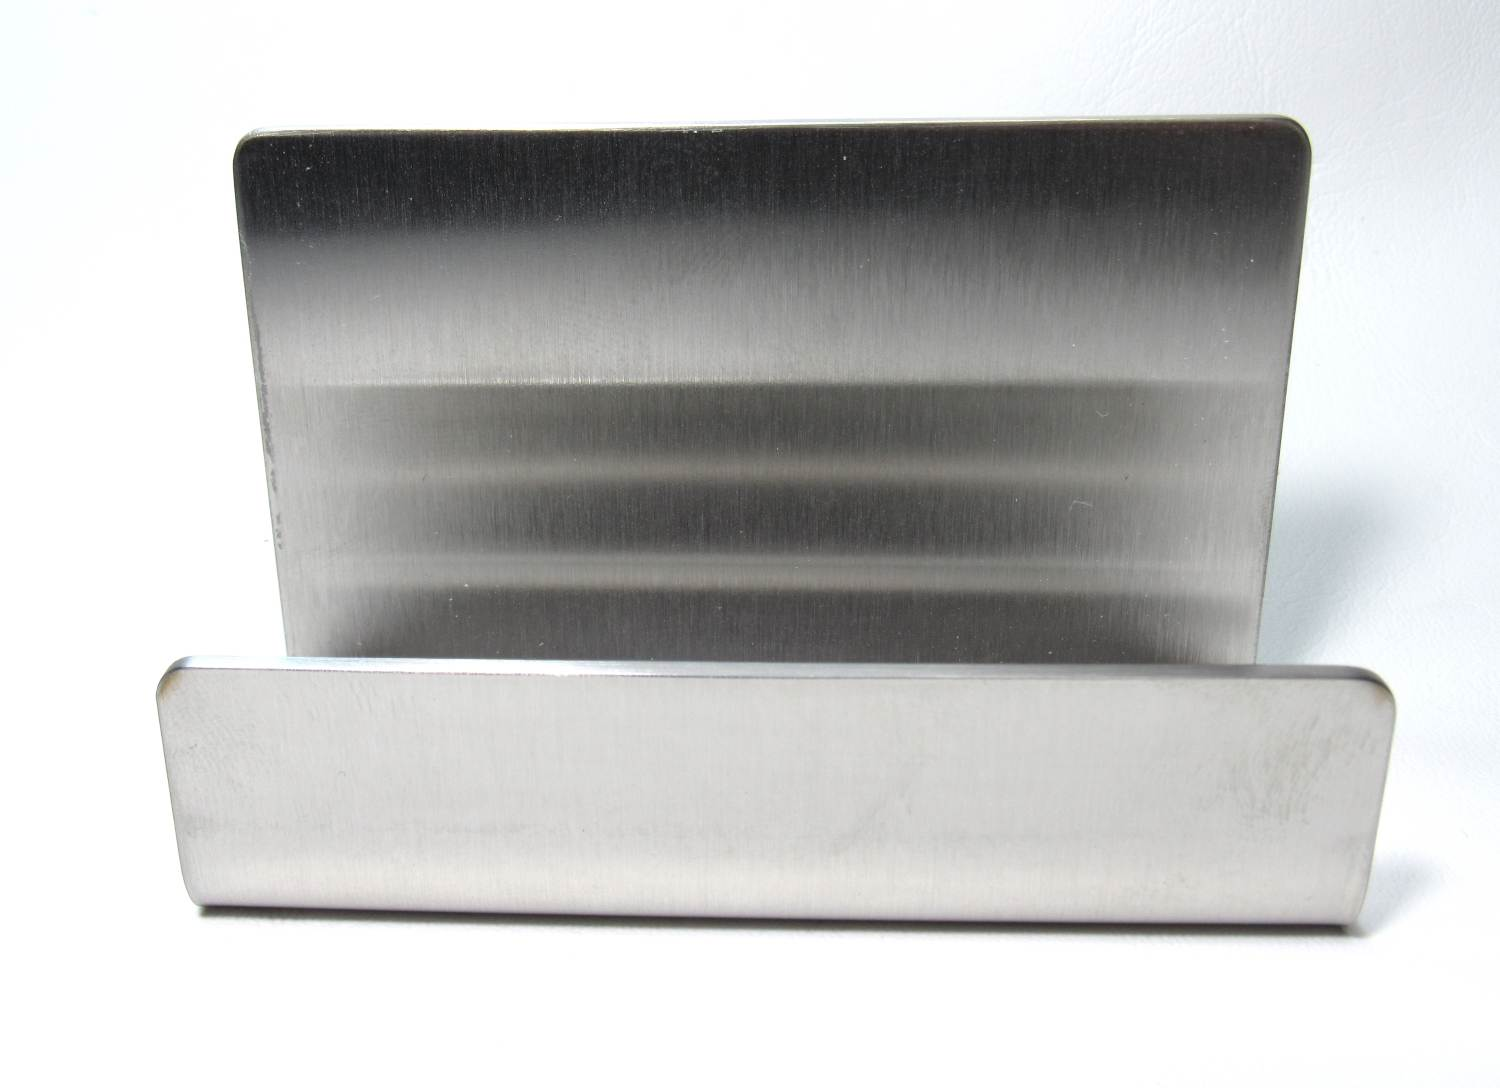 stainless steel business card holder review photo of product from front